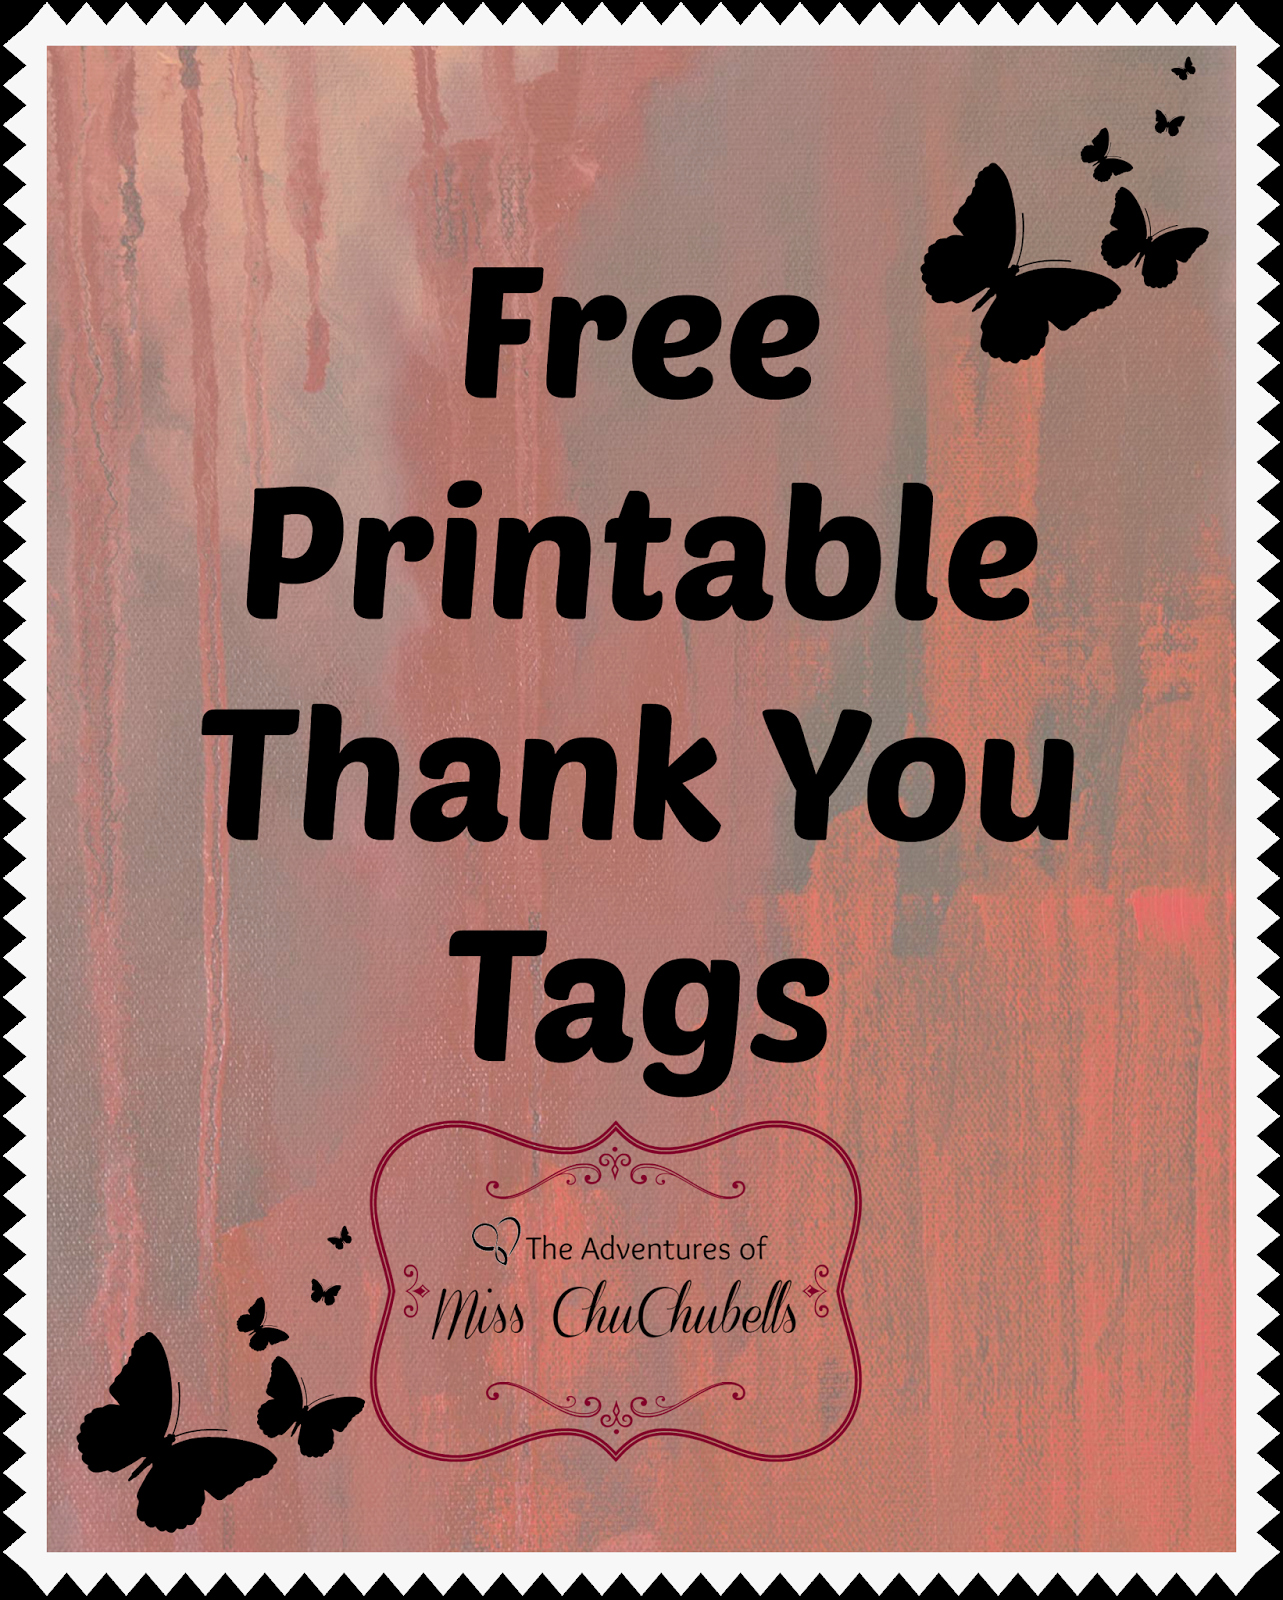 Thank You Tag Template Inspirational the Adventures Of Miss Chuchubells January 2014